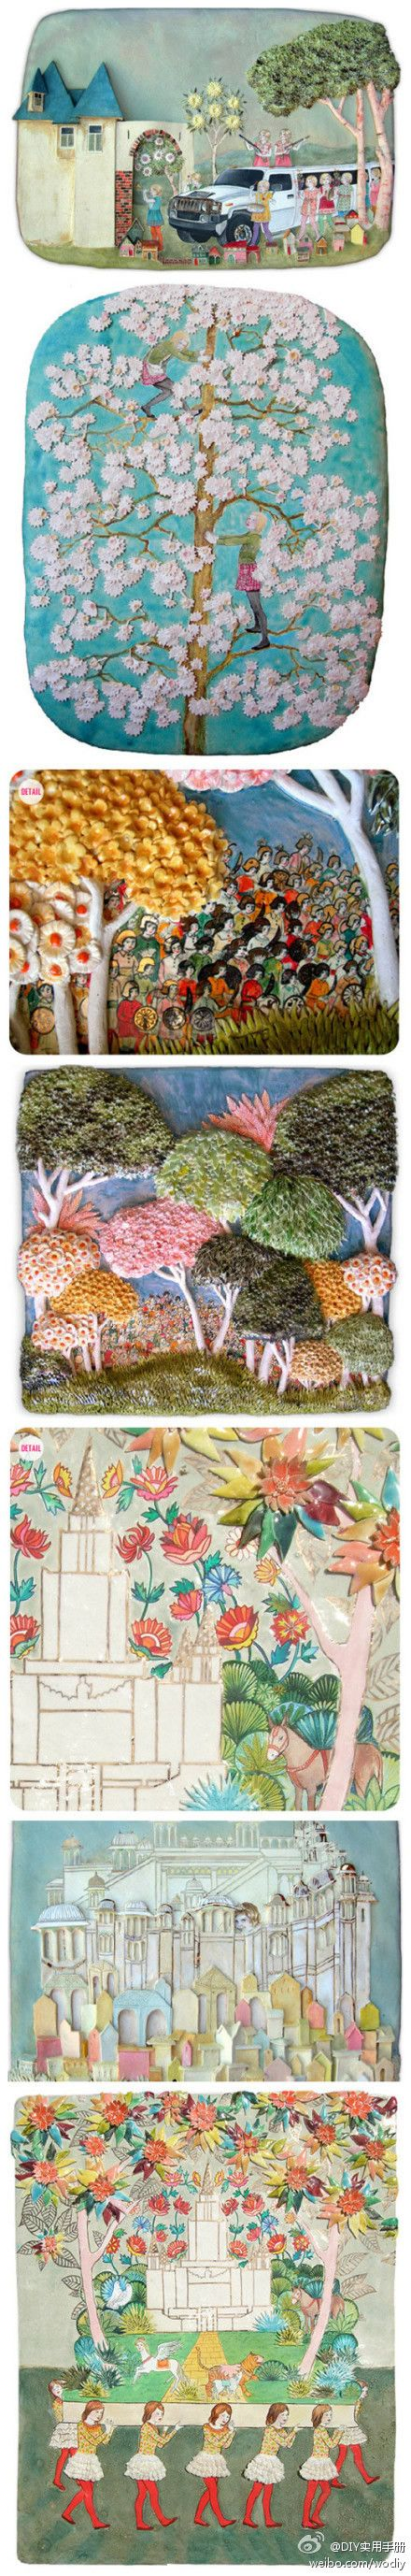 Artist amanda smith, the painting is drawn in the porcelain, which also works together with some small clay carving, mostly leaves and flower shapes together to take a look at these amazing handmade creative